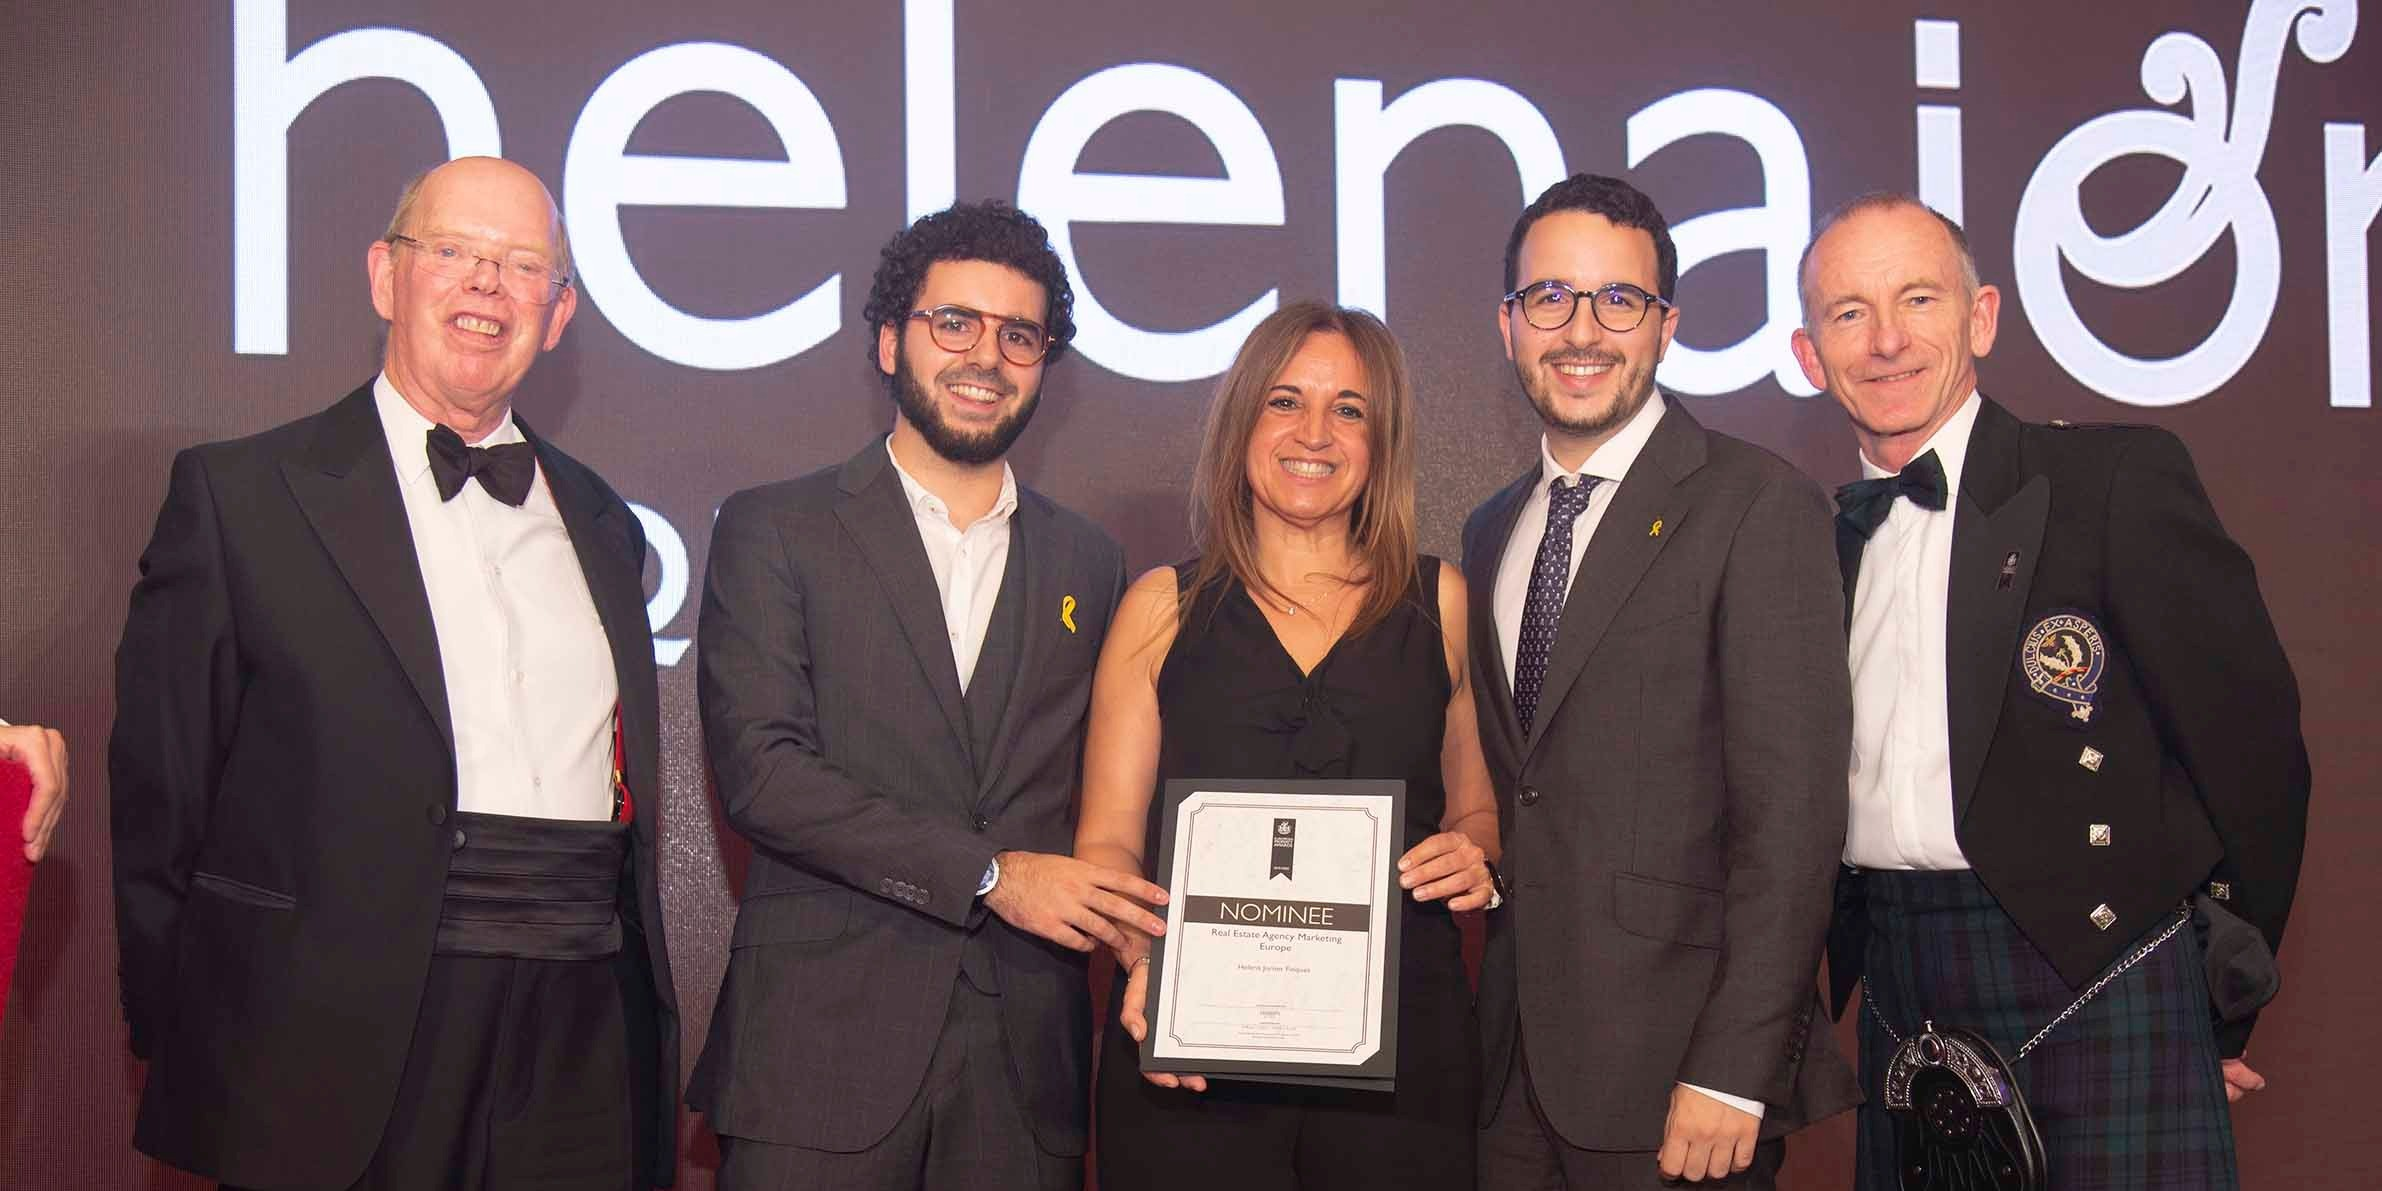 Helena Jornet Finques, Best Real Estate Agency Marketing Spain